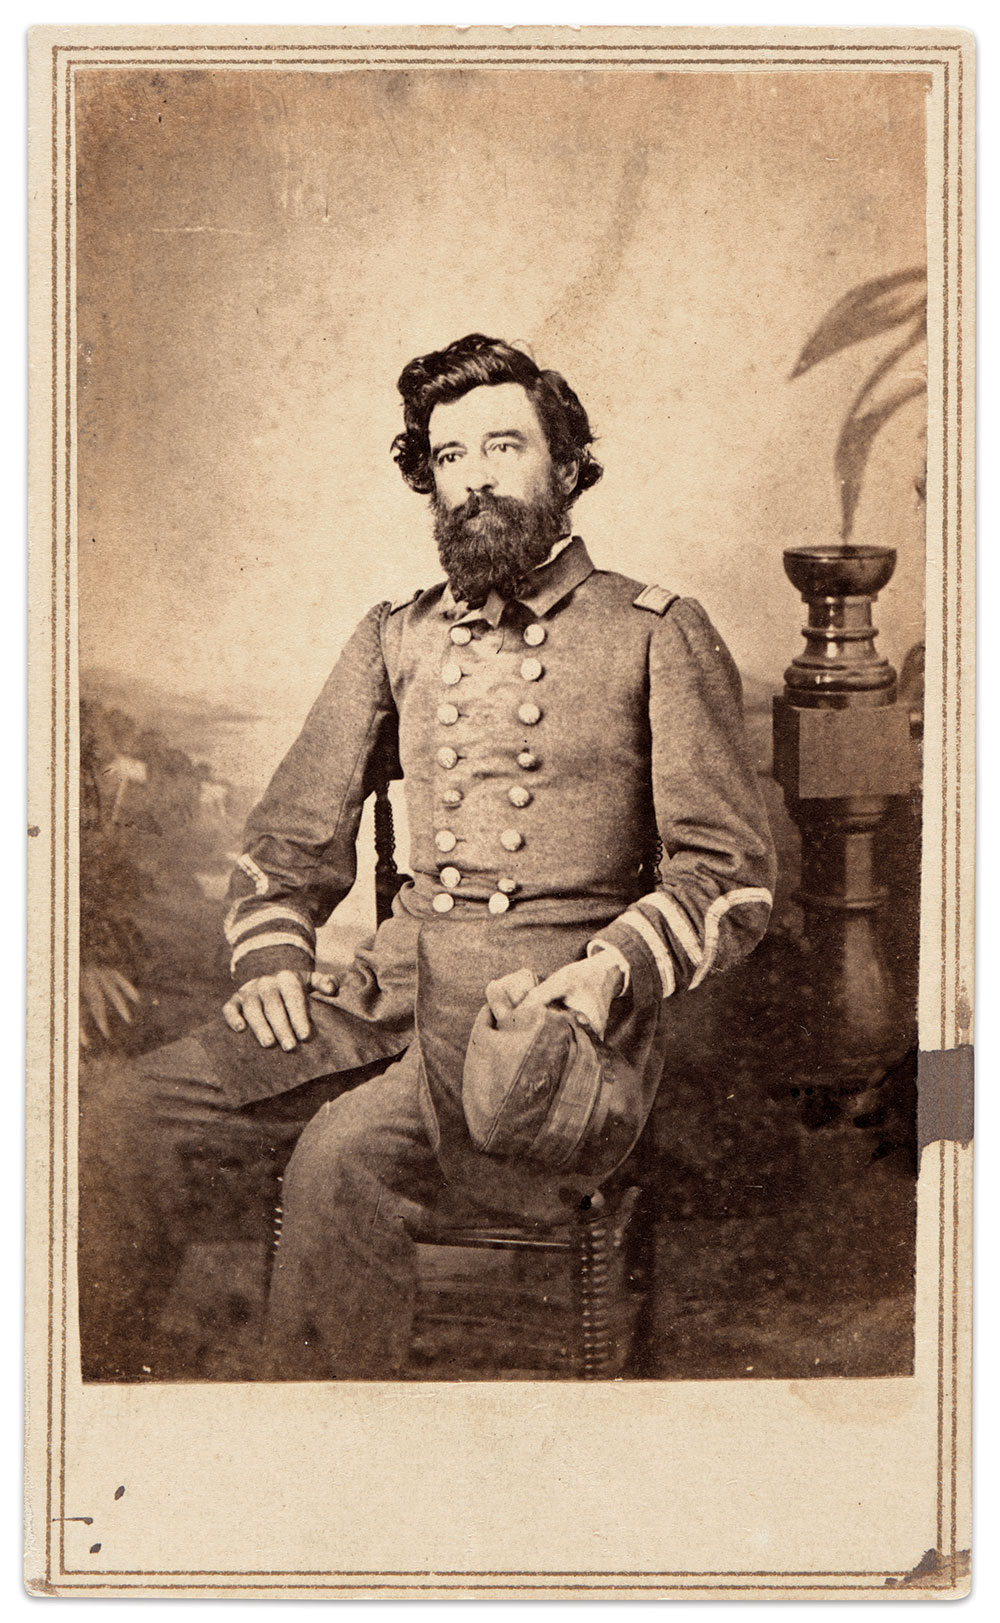 """Capt. John Newland Maffitt pictured in Bermuda, March 1864. On July 17, 1863, Maffitt described the arrival of his vessel and crew in Bermuda, """"Our reception was all that could be desired. To-day, for the first time, the Confederate flag has been saluted by a foreign nation."""" He added, """"At 10 a.m., we hoisted the English ensign at the 'fire' and fired the national salute of twenty-one guns. As soon as we finished, the fort returned, with the same number."""" Courtesy of the Confederate Memorial Literary Society (CMLS) Image Collection, Virginia Museum of History & Culture."""